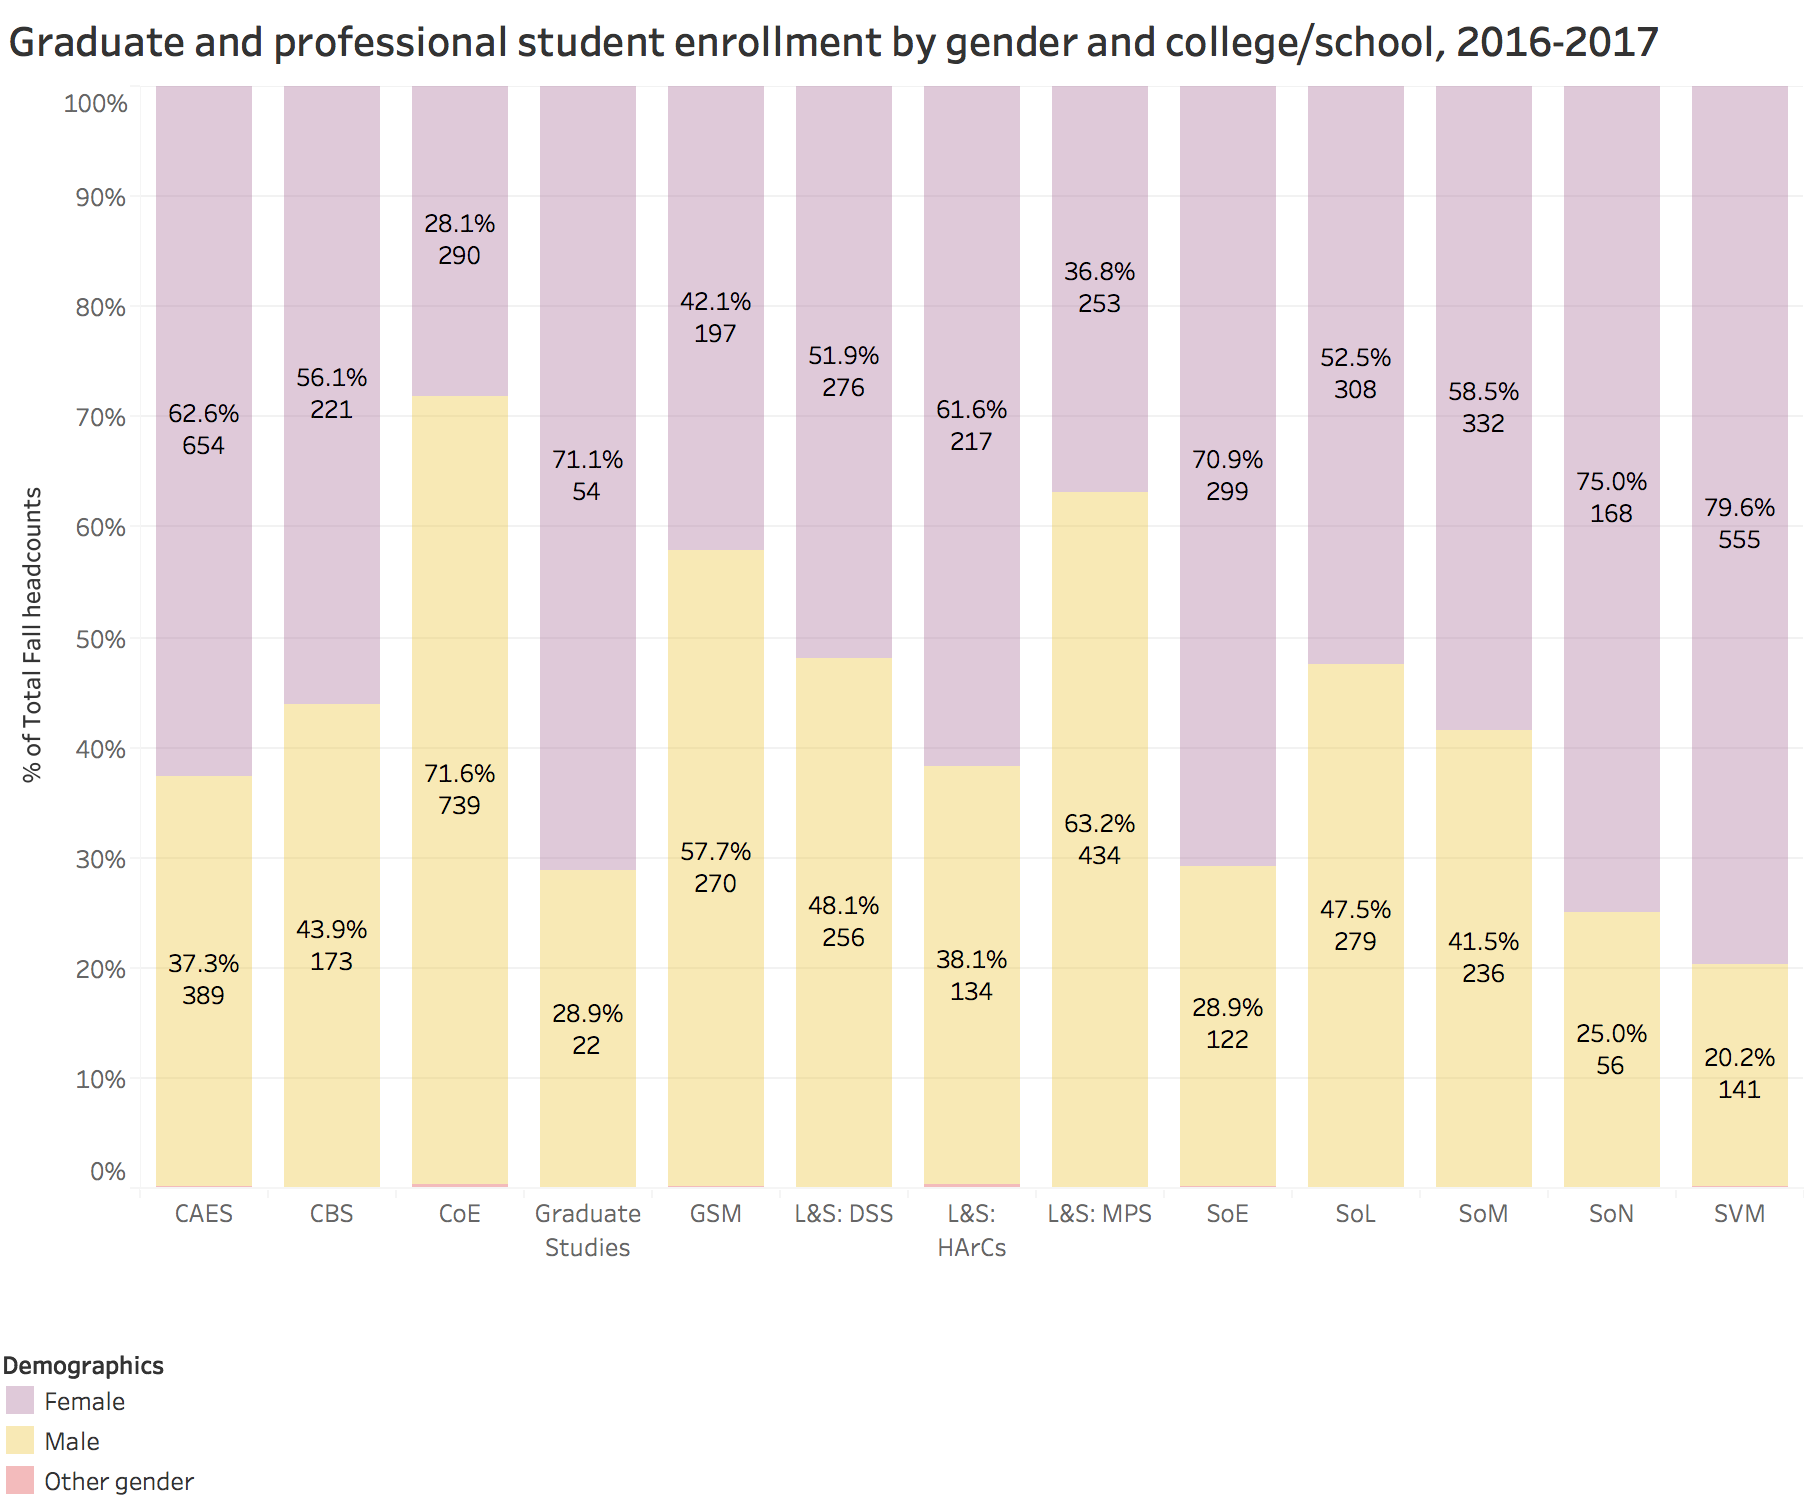 Graduate and professional student enrollment by gender and college/school, 2016-2017